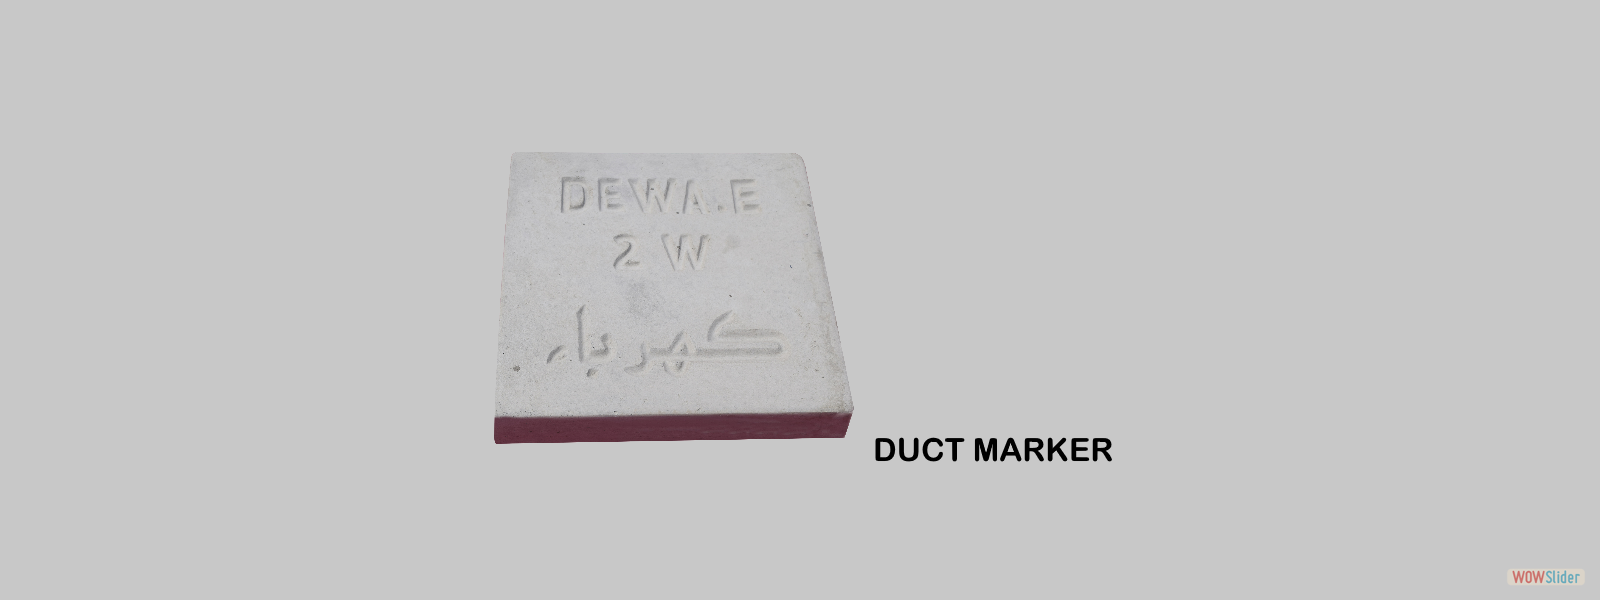 duct marker